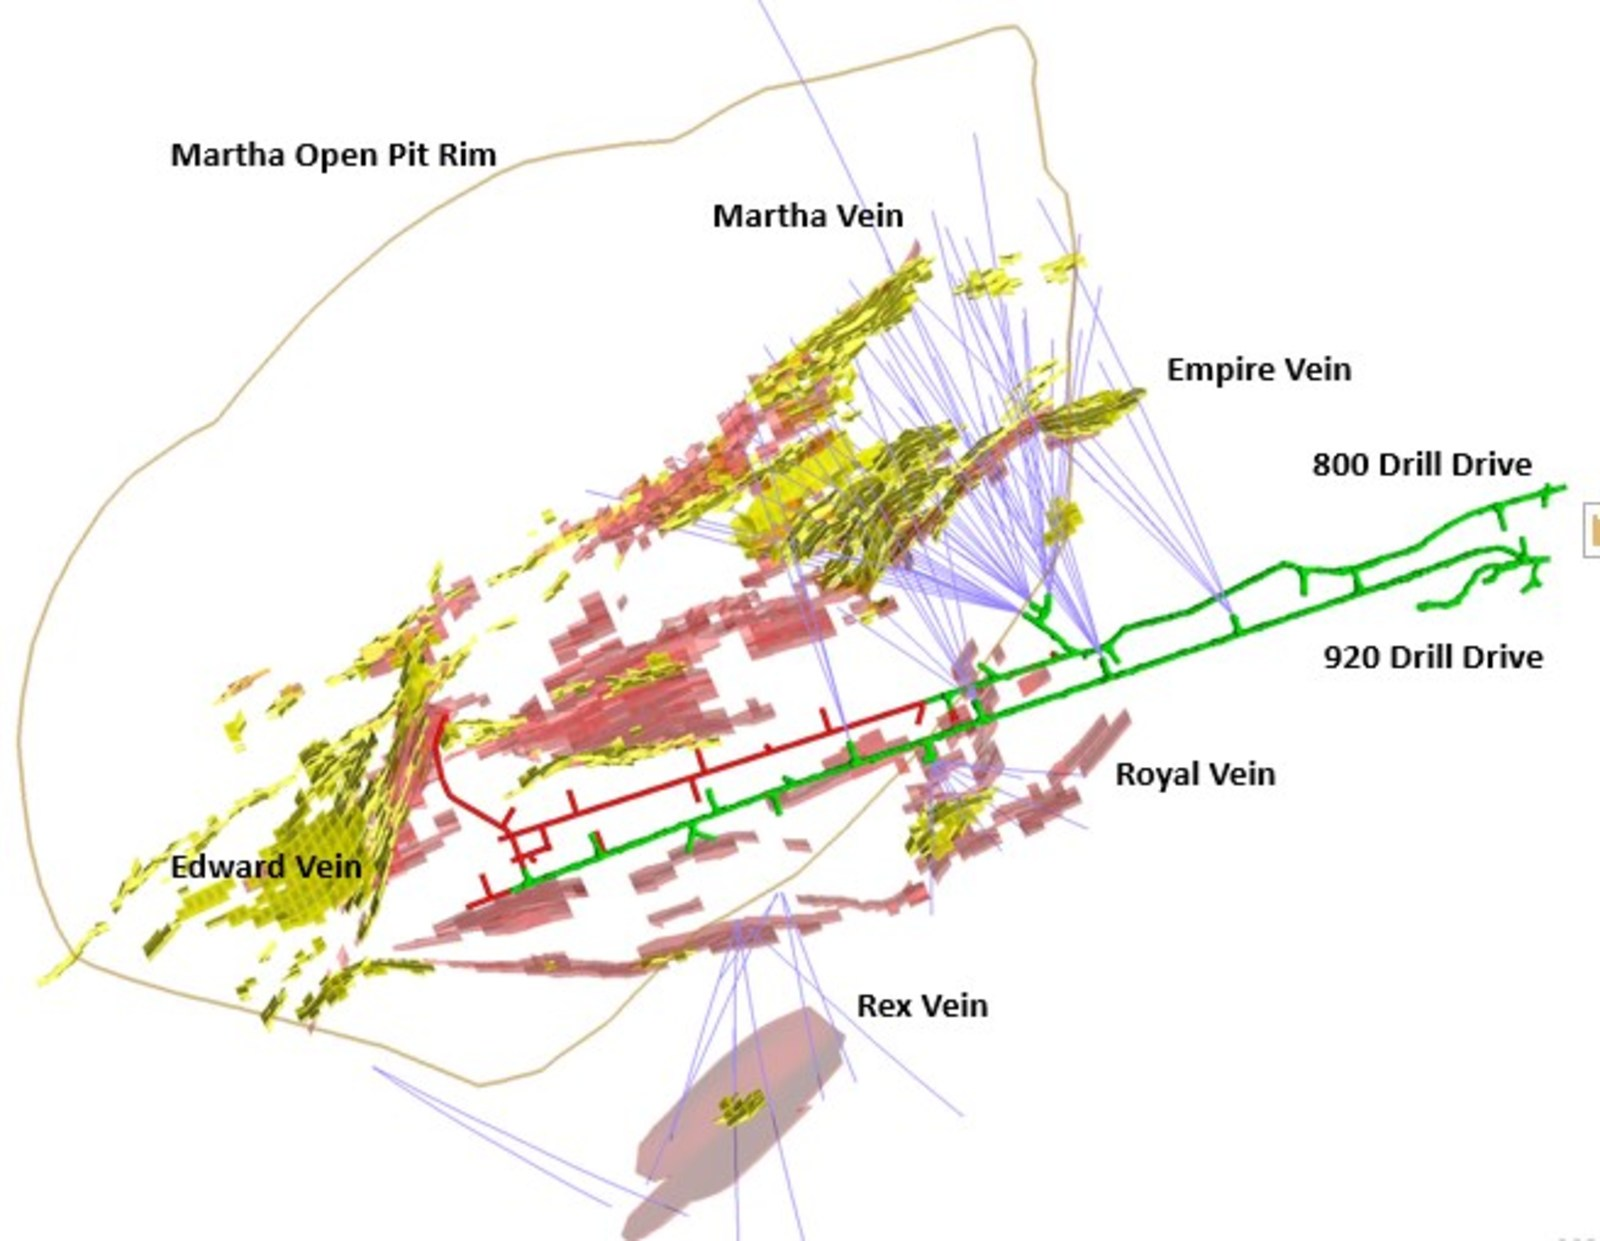 Figure 2 – Plan View showing drill holes within the Martha vein system and the dominant targeted veins. Pink = Main Target Areas, Yellow = Current Martha Underground Resource Areas.